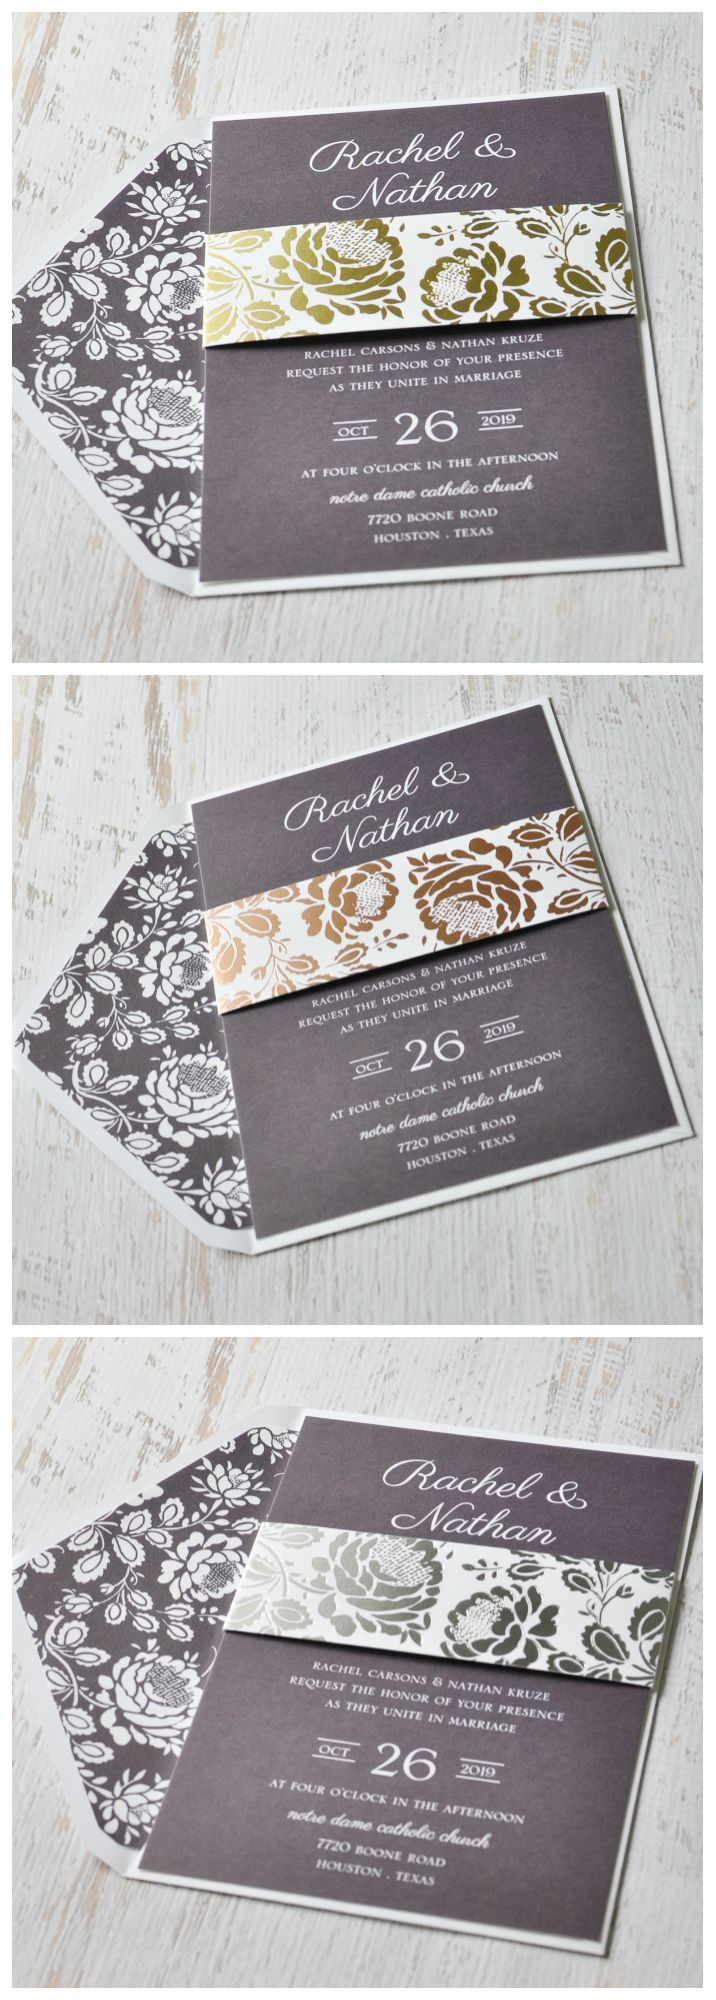 time wedding invitatiowording%0A A touch of shine and a lot of style will captivate your wedding guests  This